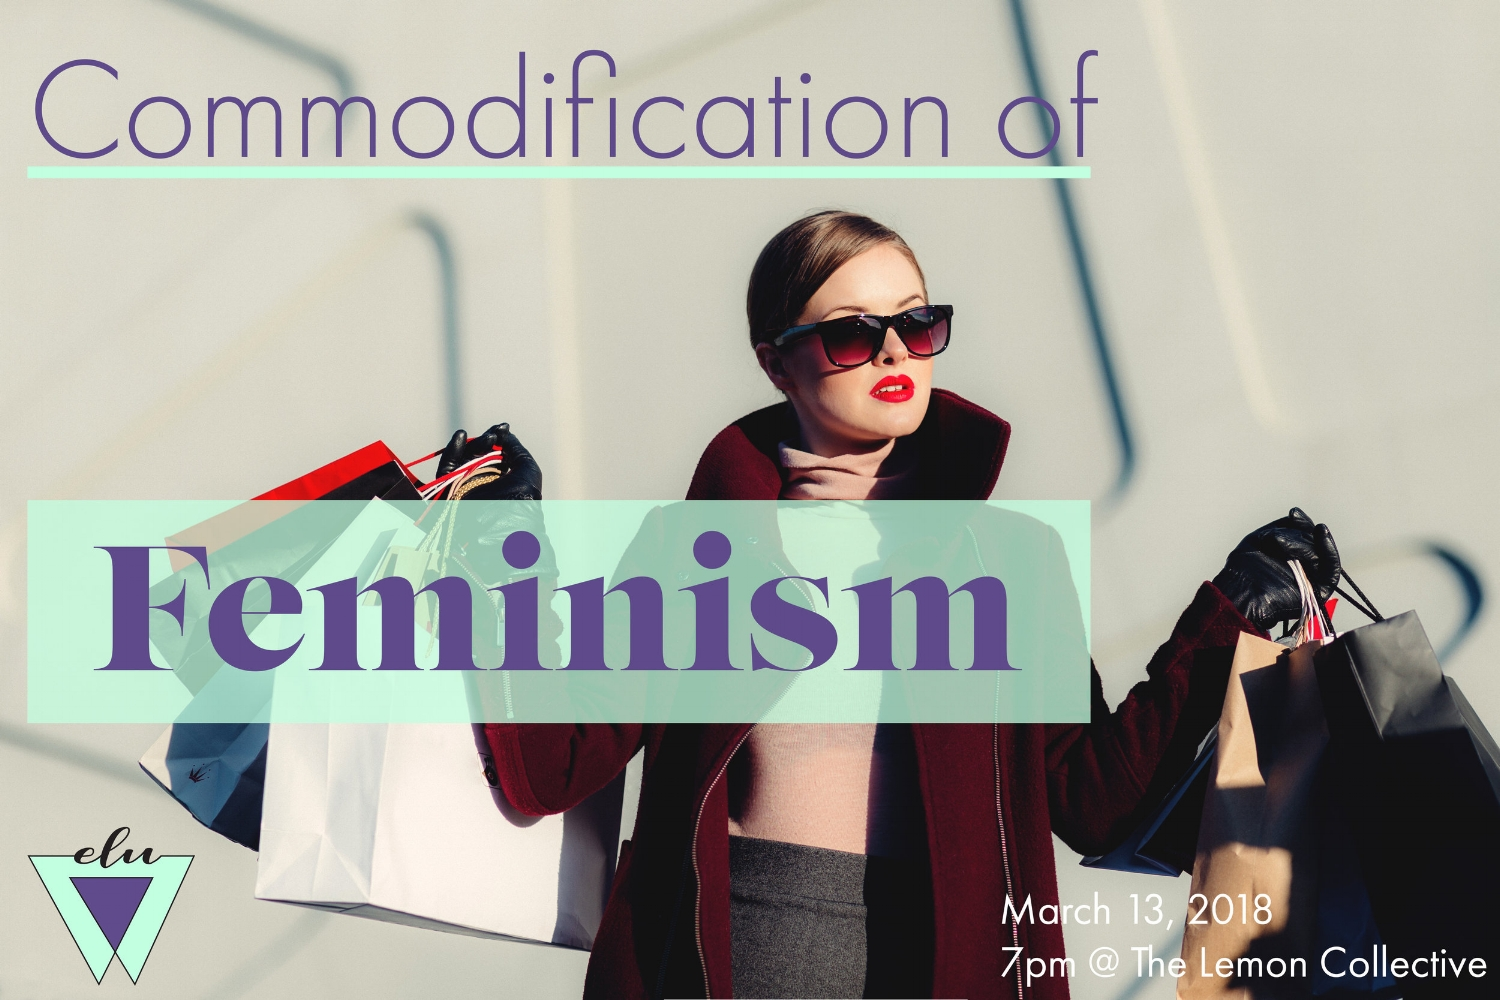 Commodification of feminism ELU